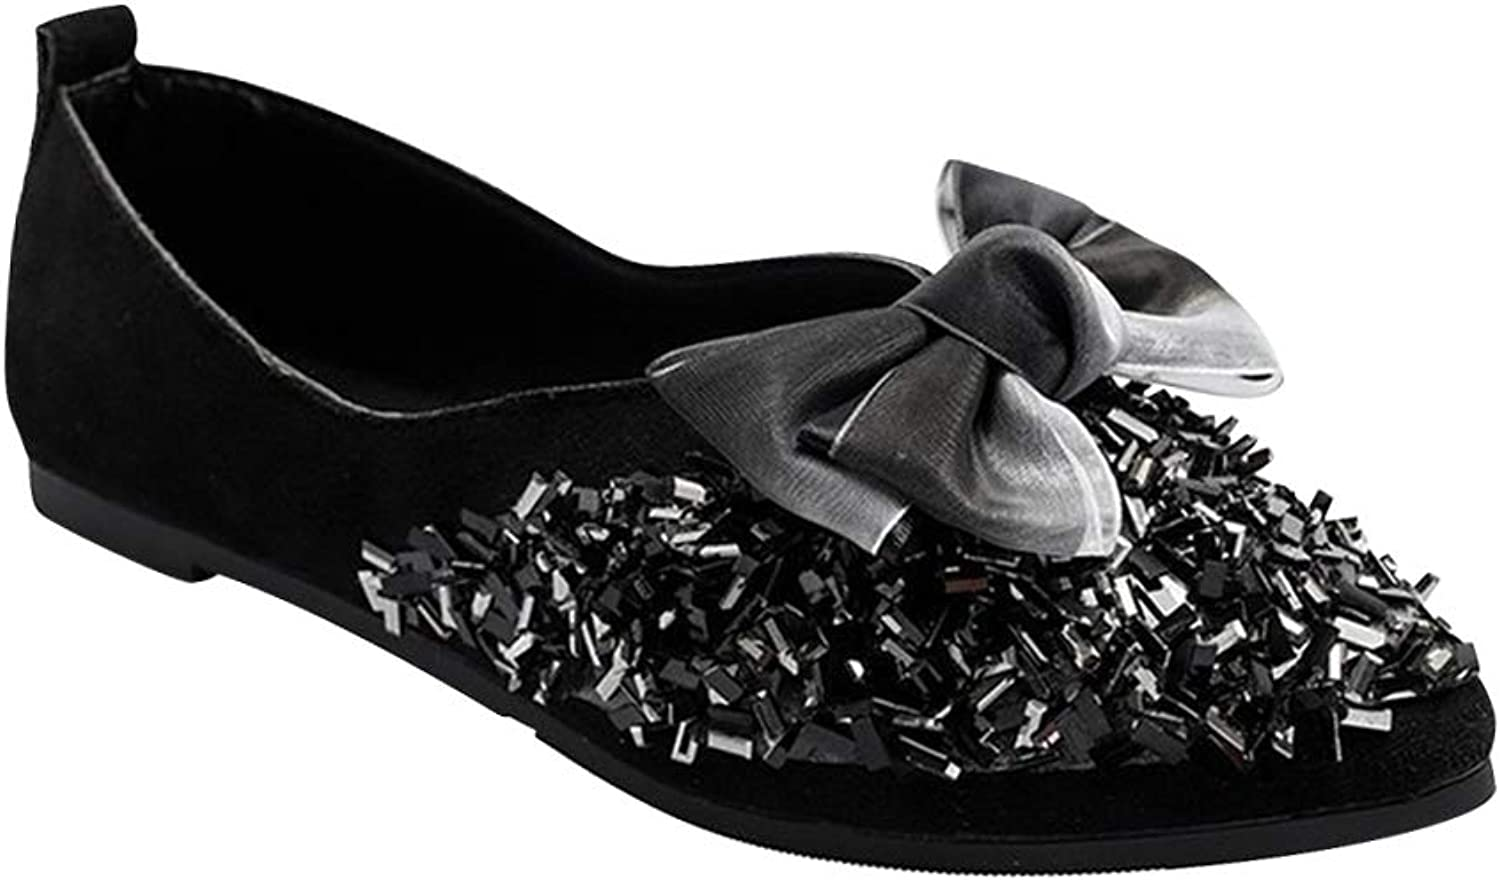 Yudesun Women Ballet Flats shoes - Loafers Fashion Pointed Pumps Sequin Casual Slip On Bow Work Walking Office Girl Lazy shoes